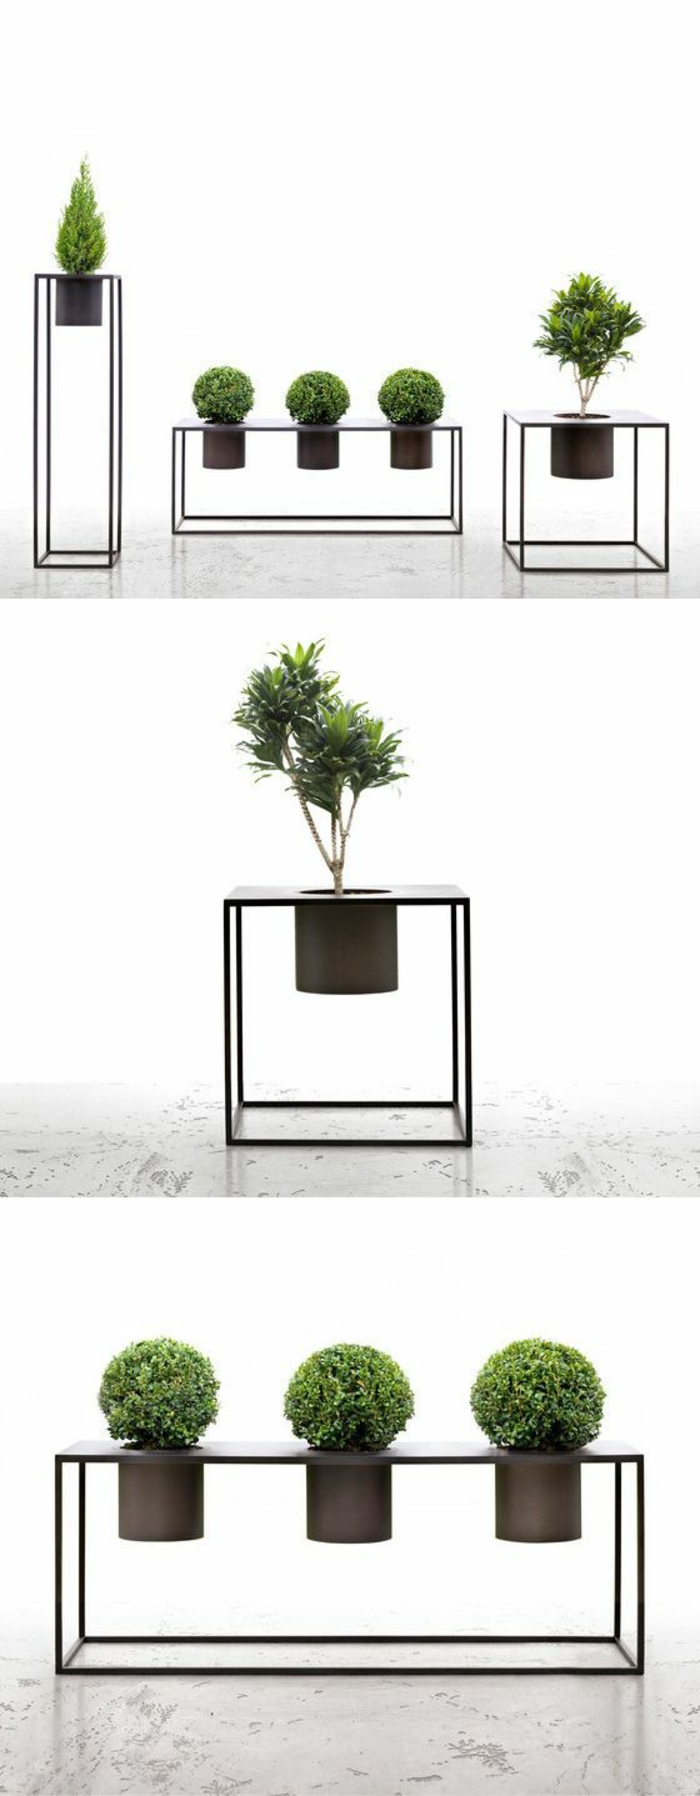 1001 id es pour porte plante les mod les en bois en verre et en m tal. Black Bedroom Furniture Sets. Home Design Ideas